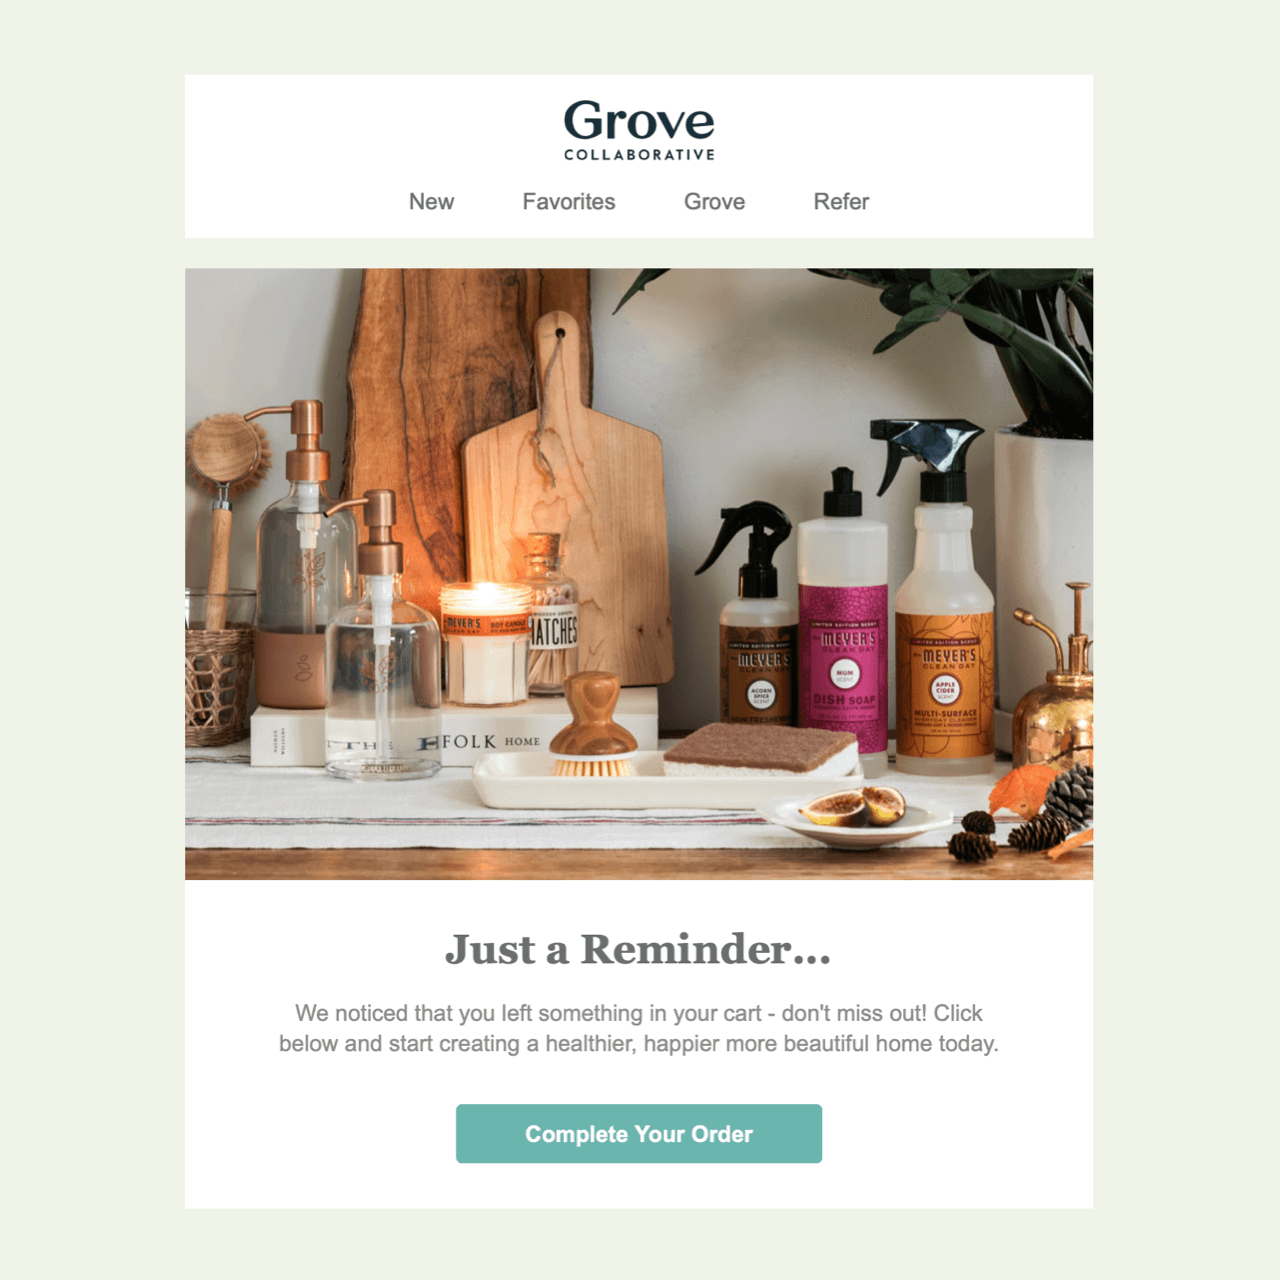 Grove pictures a lifestyle their customers might be missing out by not completing the purchase